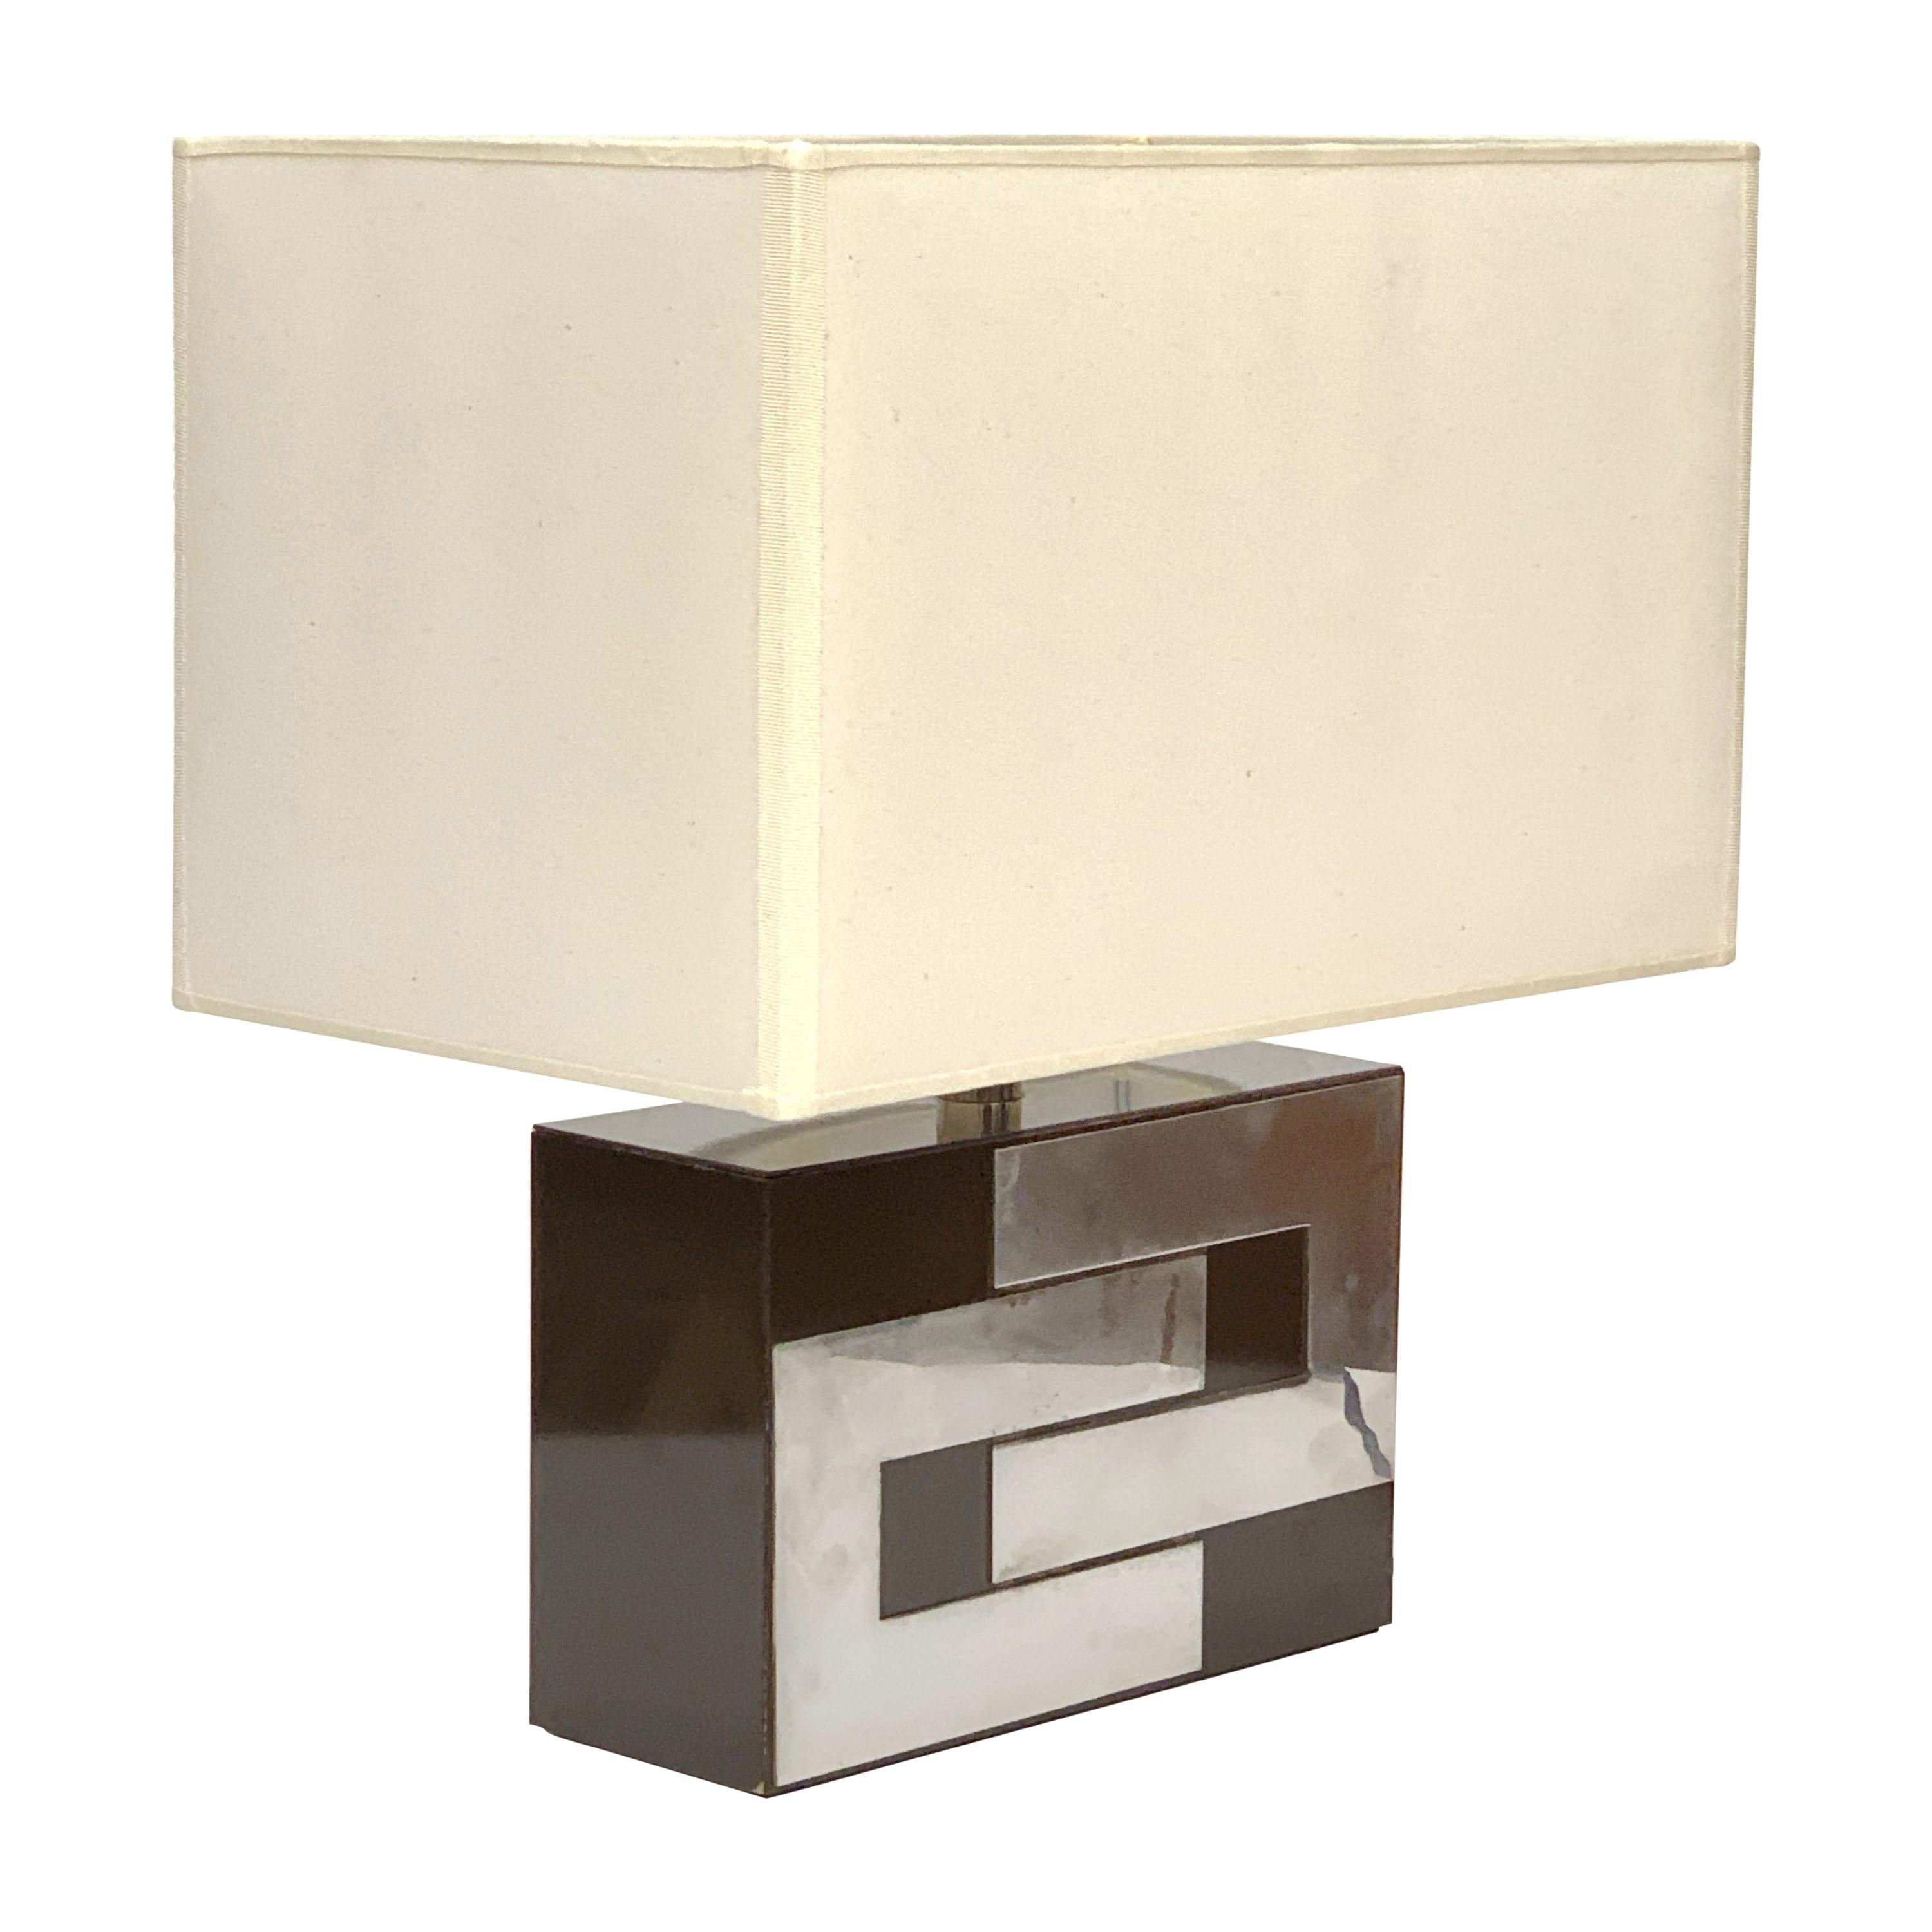 Midcentury Brown Formica and Chrome French Table Lamp in Willy Rizzo Style 1970s